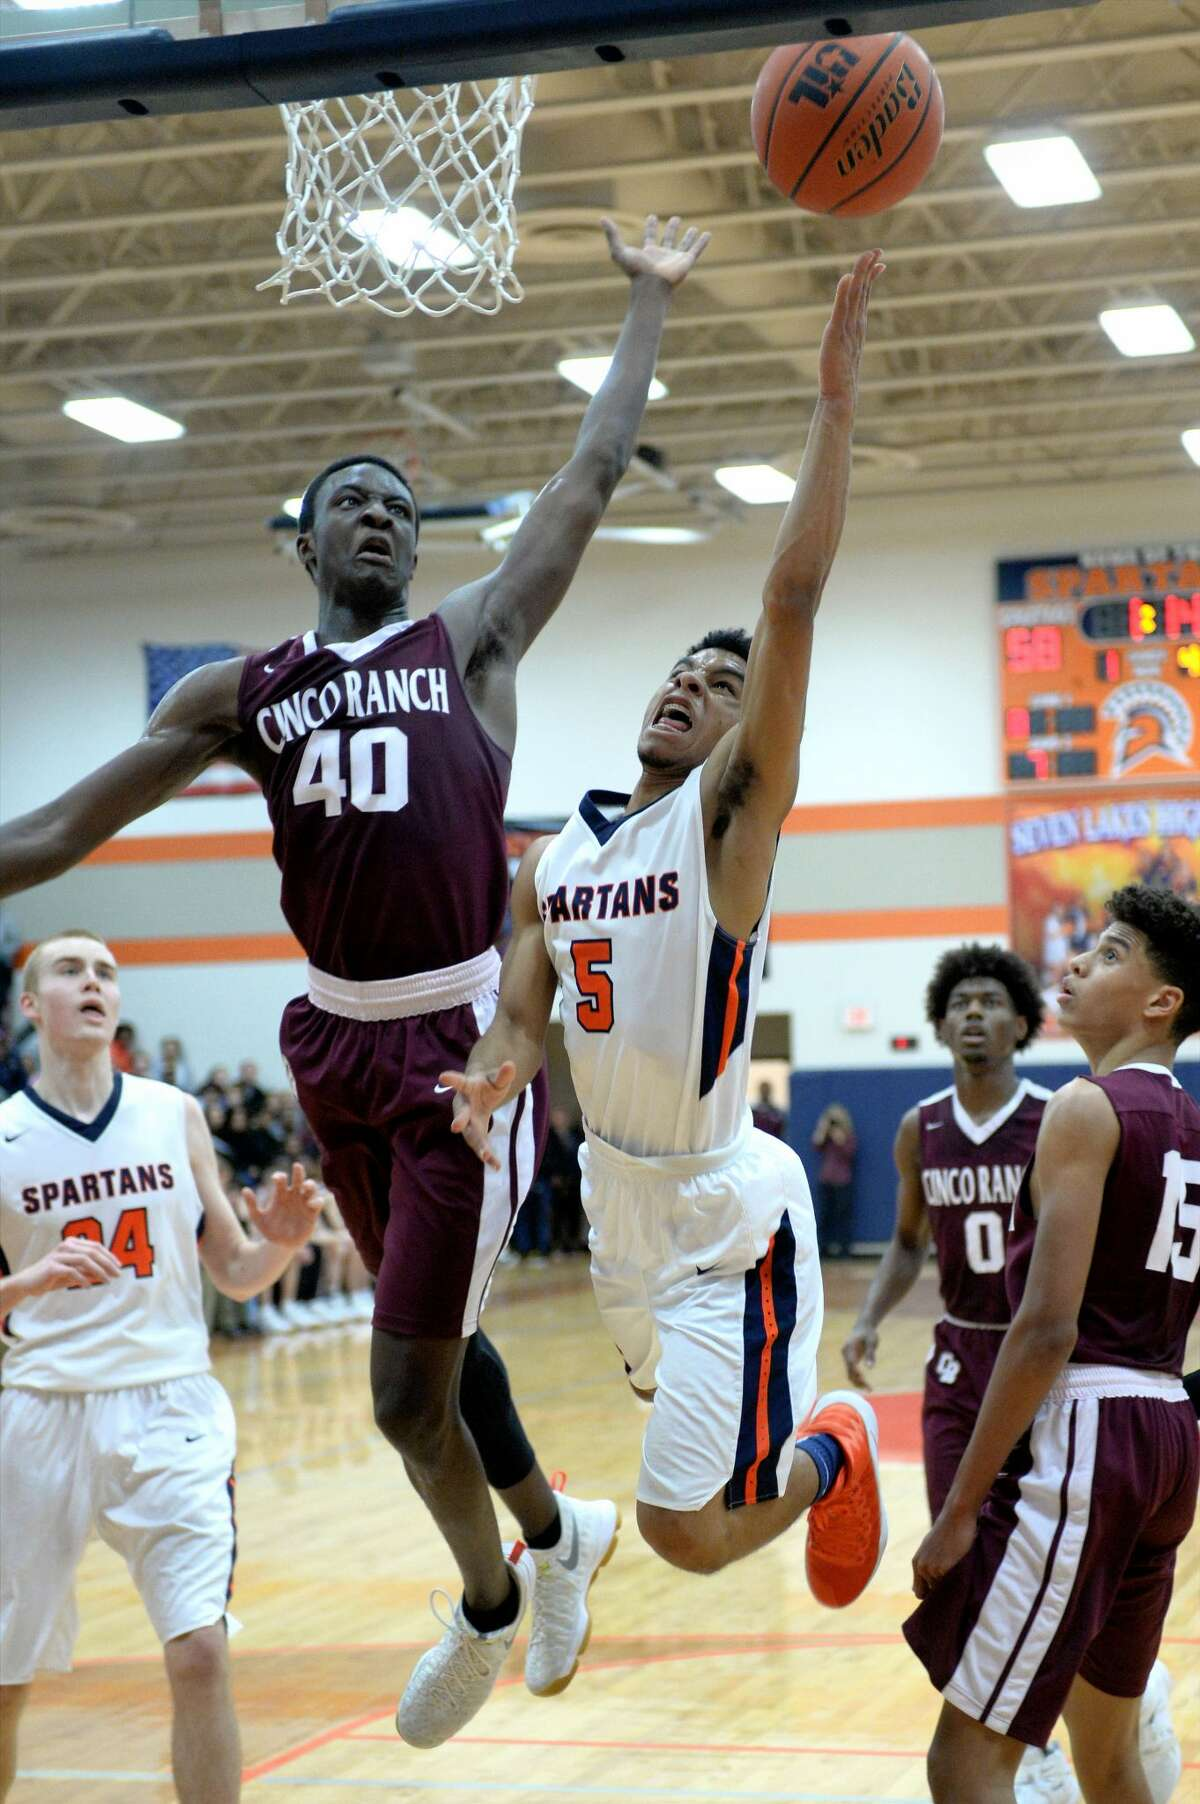 Alonzo Sule (40) of Cinco Ranch attempts to block a shot made by Logan West (5) of Seven Lakes during the second half of a boys basketball game between the Cinco Ranch Cougars and the Seven Lakes Spartans on Friday January 6, 2017 at the Seven Lakes HS, Katy, TX.